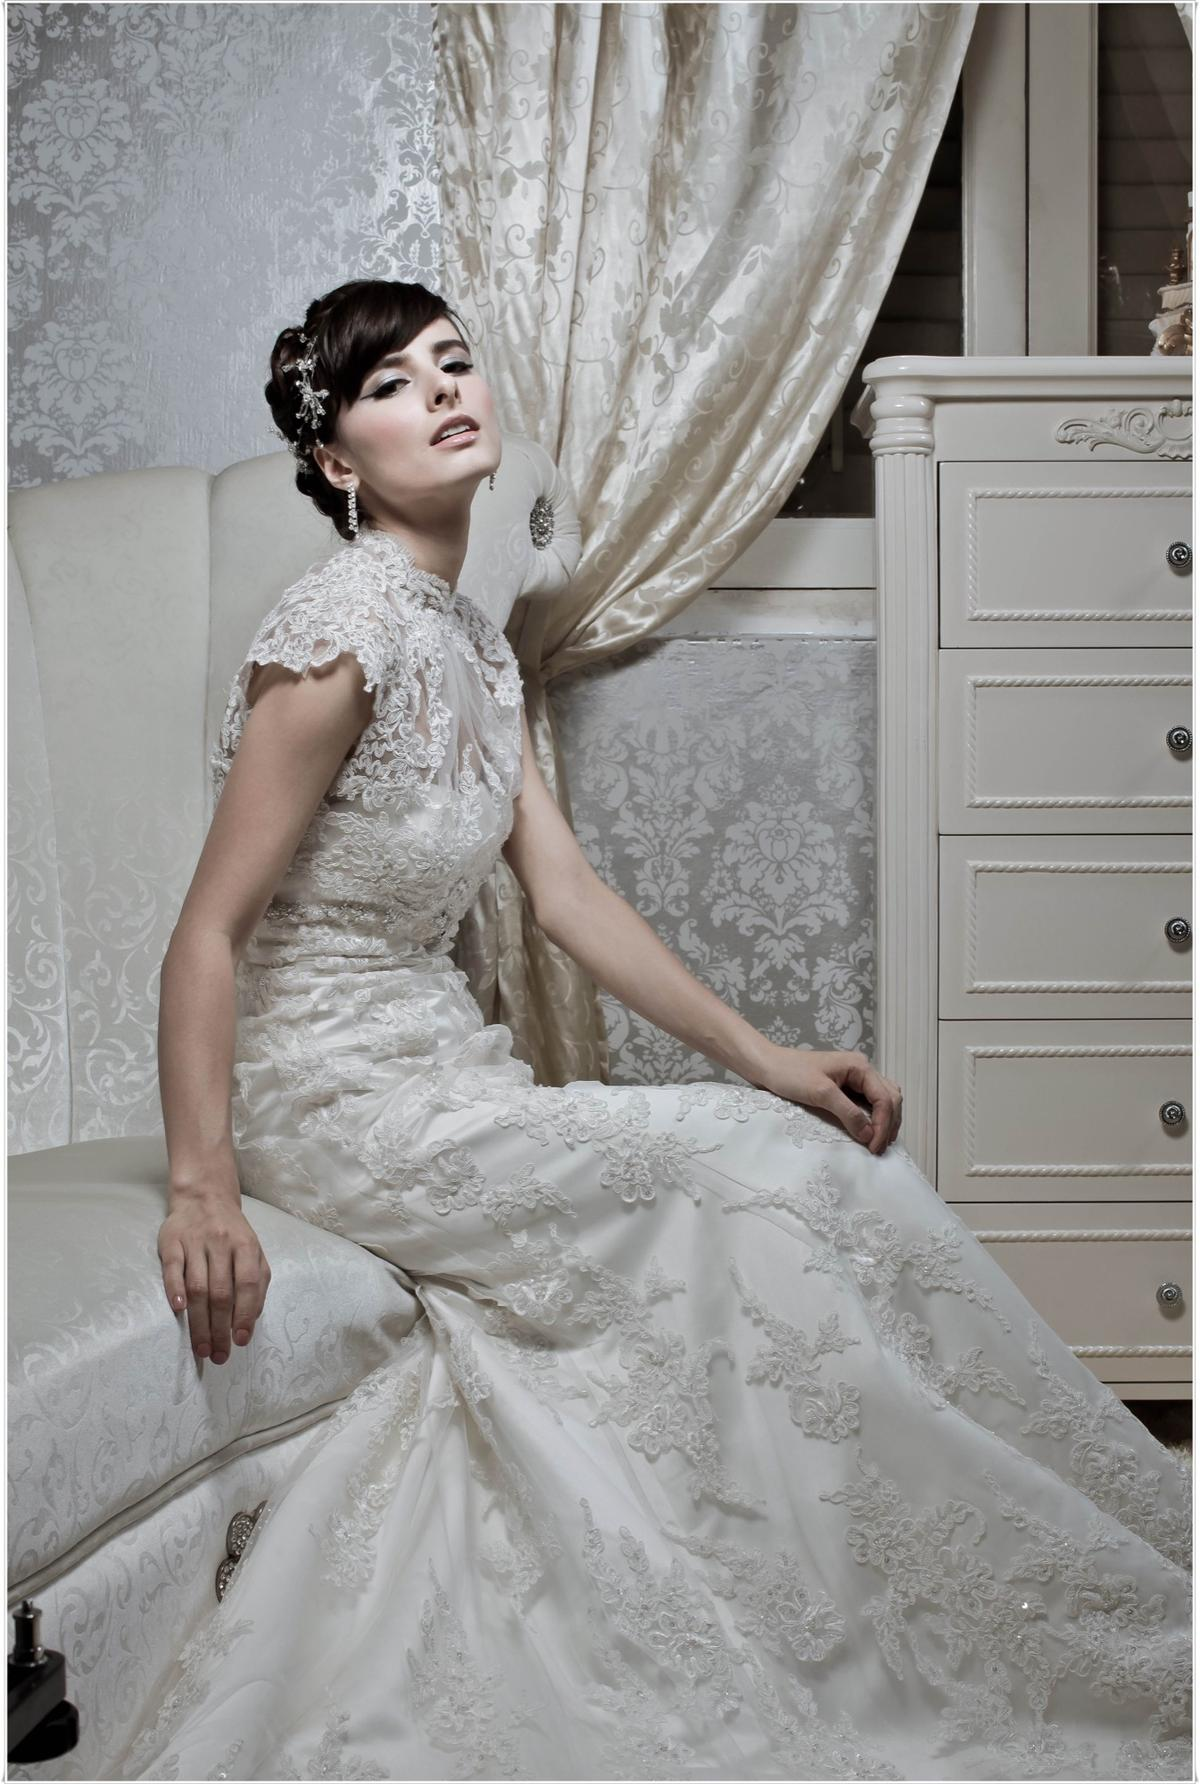 http://www.pwimages.com/images/perfectbride/4533a602316ae116f60242989b9b6a2a-201.jpg